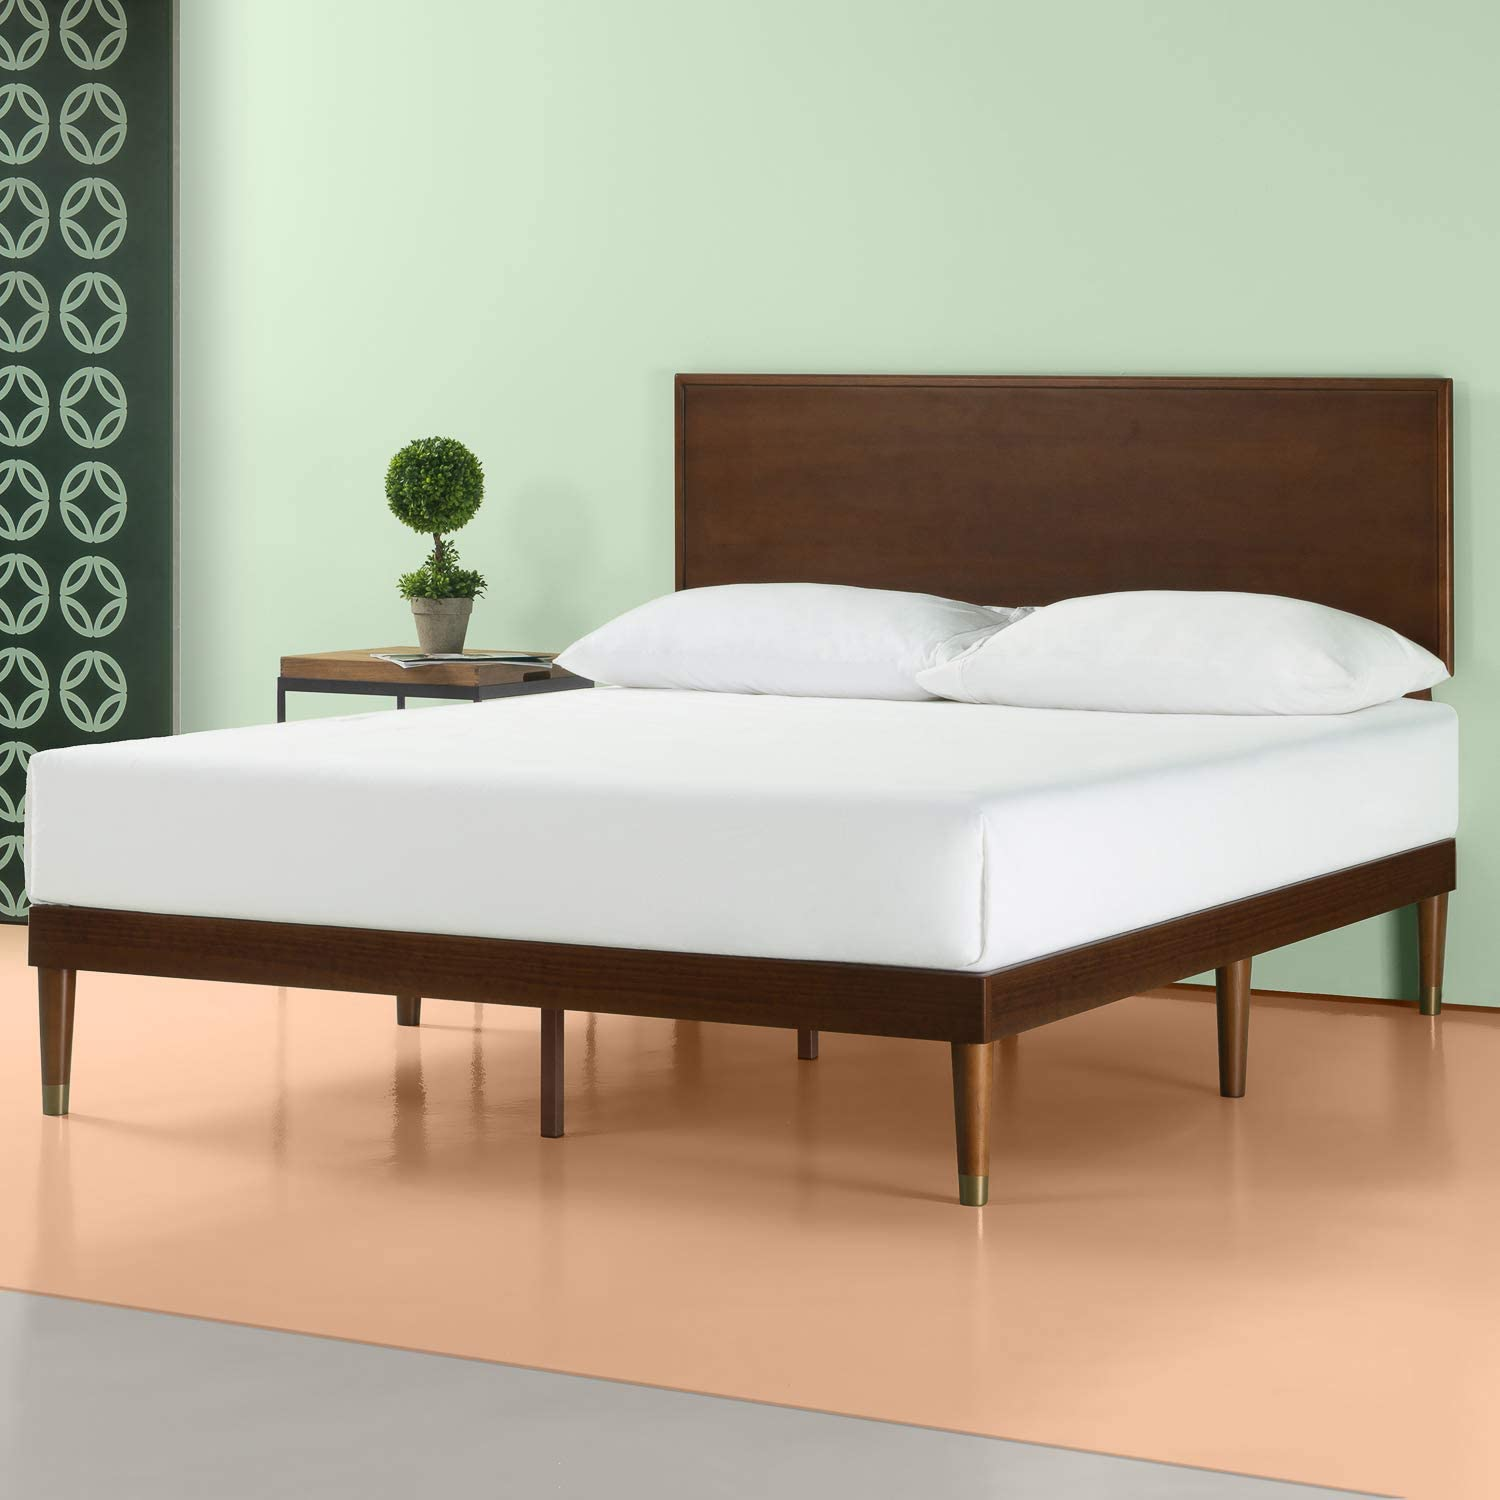 Zinus Deluxe Mid-Century Wood Platform Bed with Adjustable height Headboard, no Box Spring needed, Twin